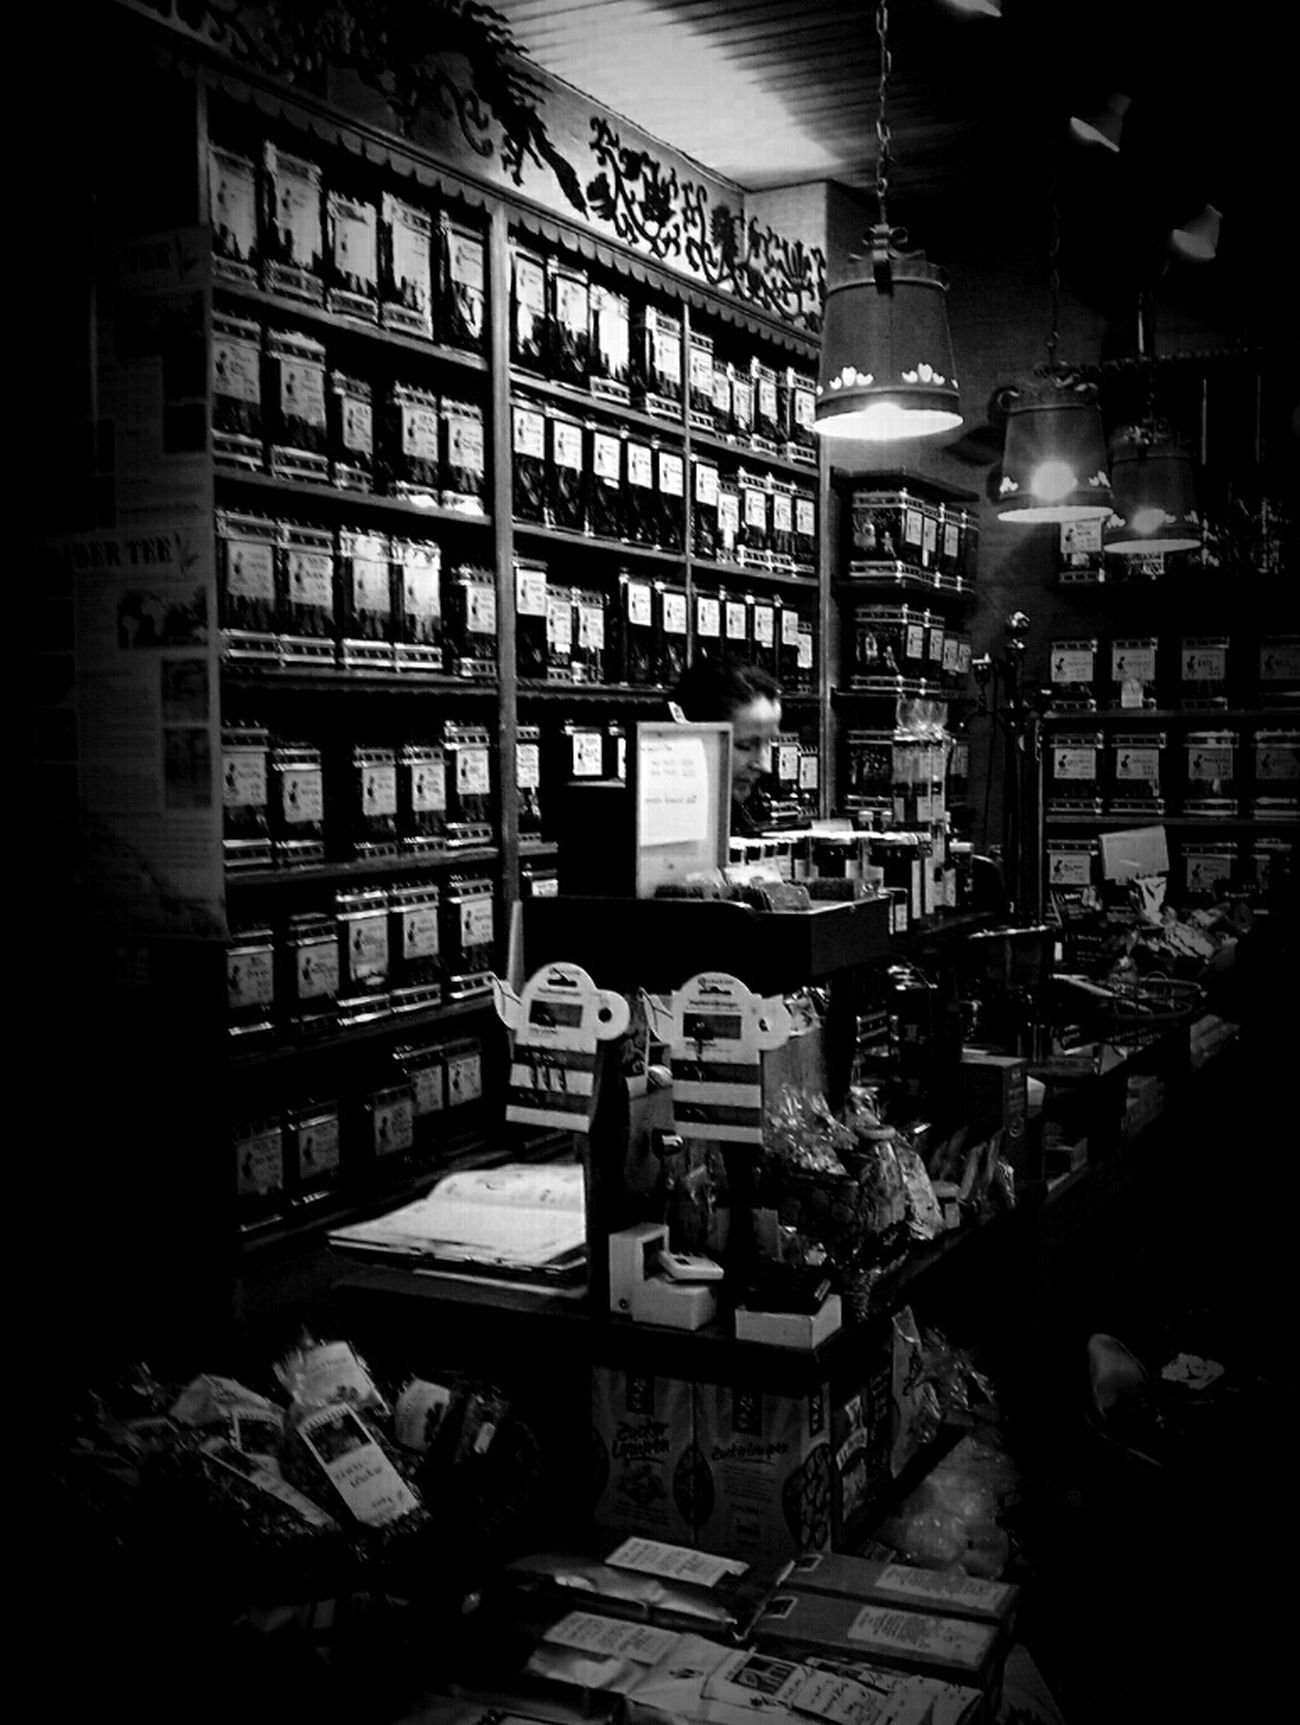 Tea time 😊 Untold Stories Fortheloveofblackandwhite Black & White Light And Shadow Bw_collection Darkness And Light Monochrome Blackandwhite Shop Creative Light And Shadow